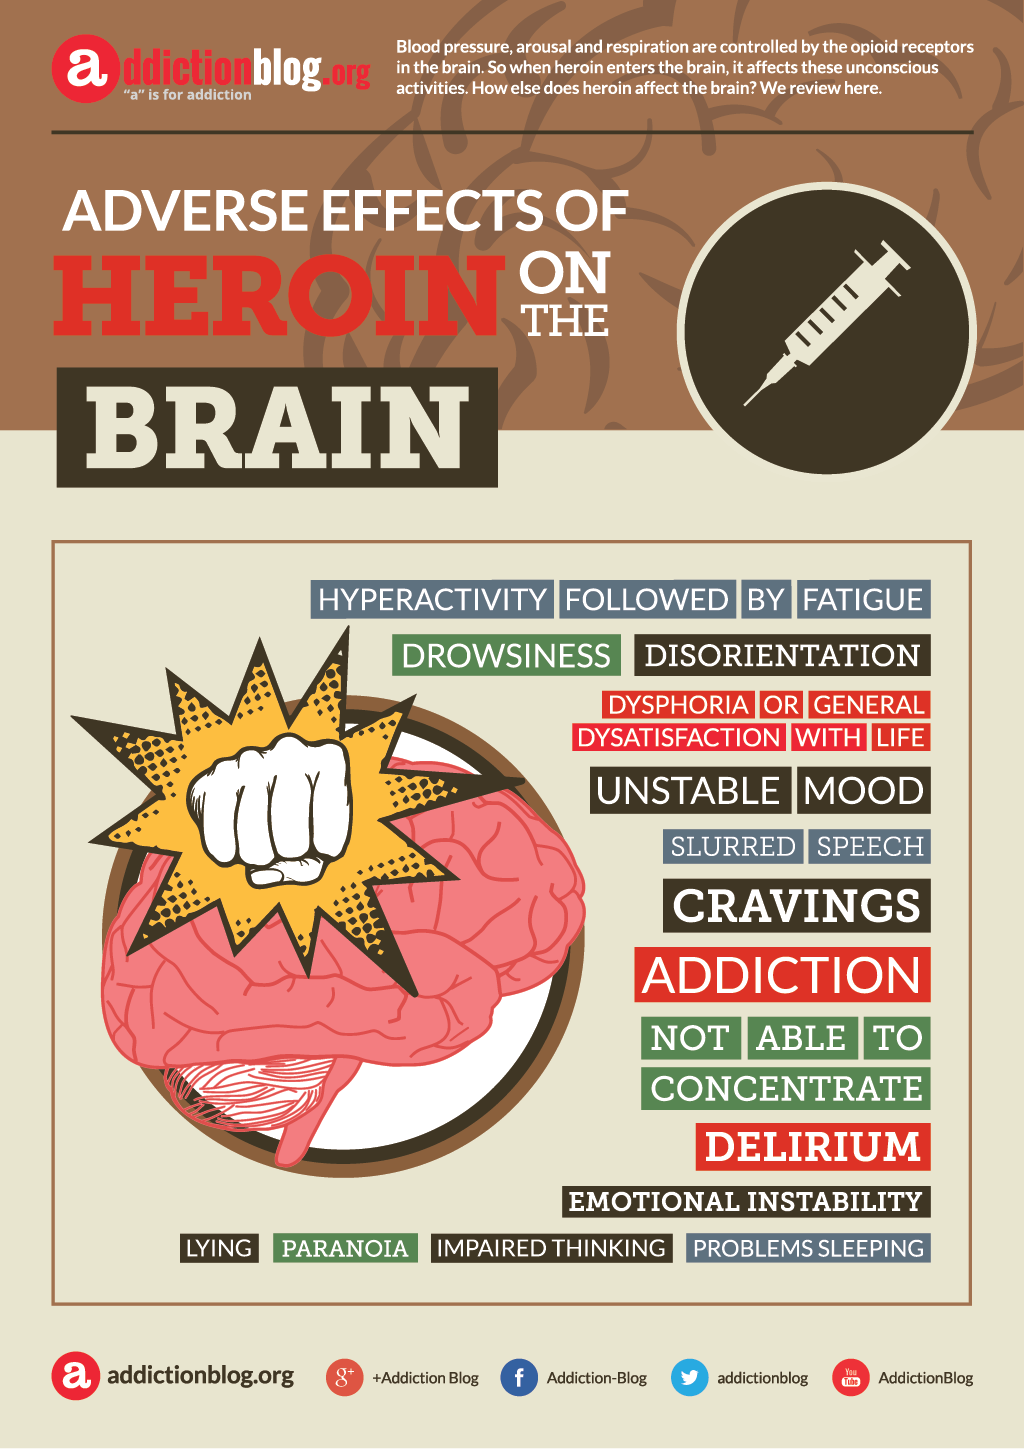 Negative and adverse effects of heroin on the brain (INFOGRAPHIC)